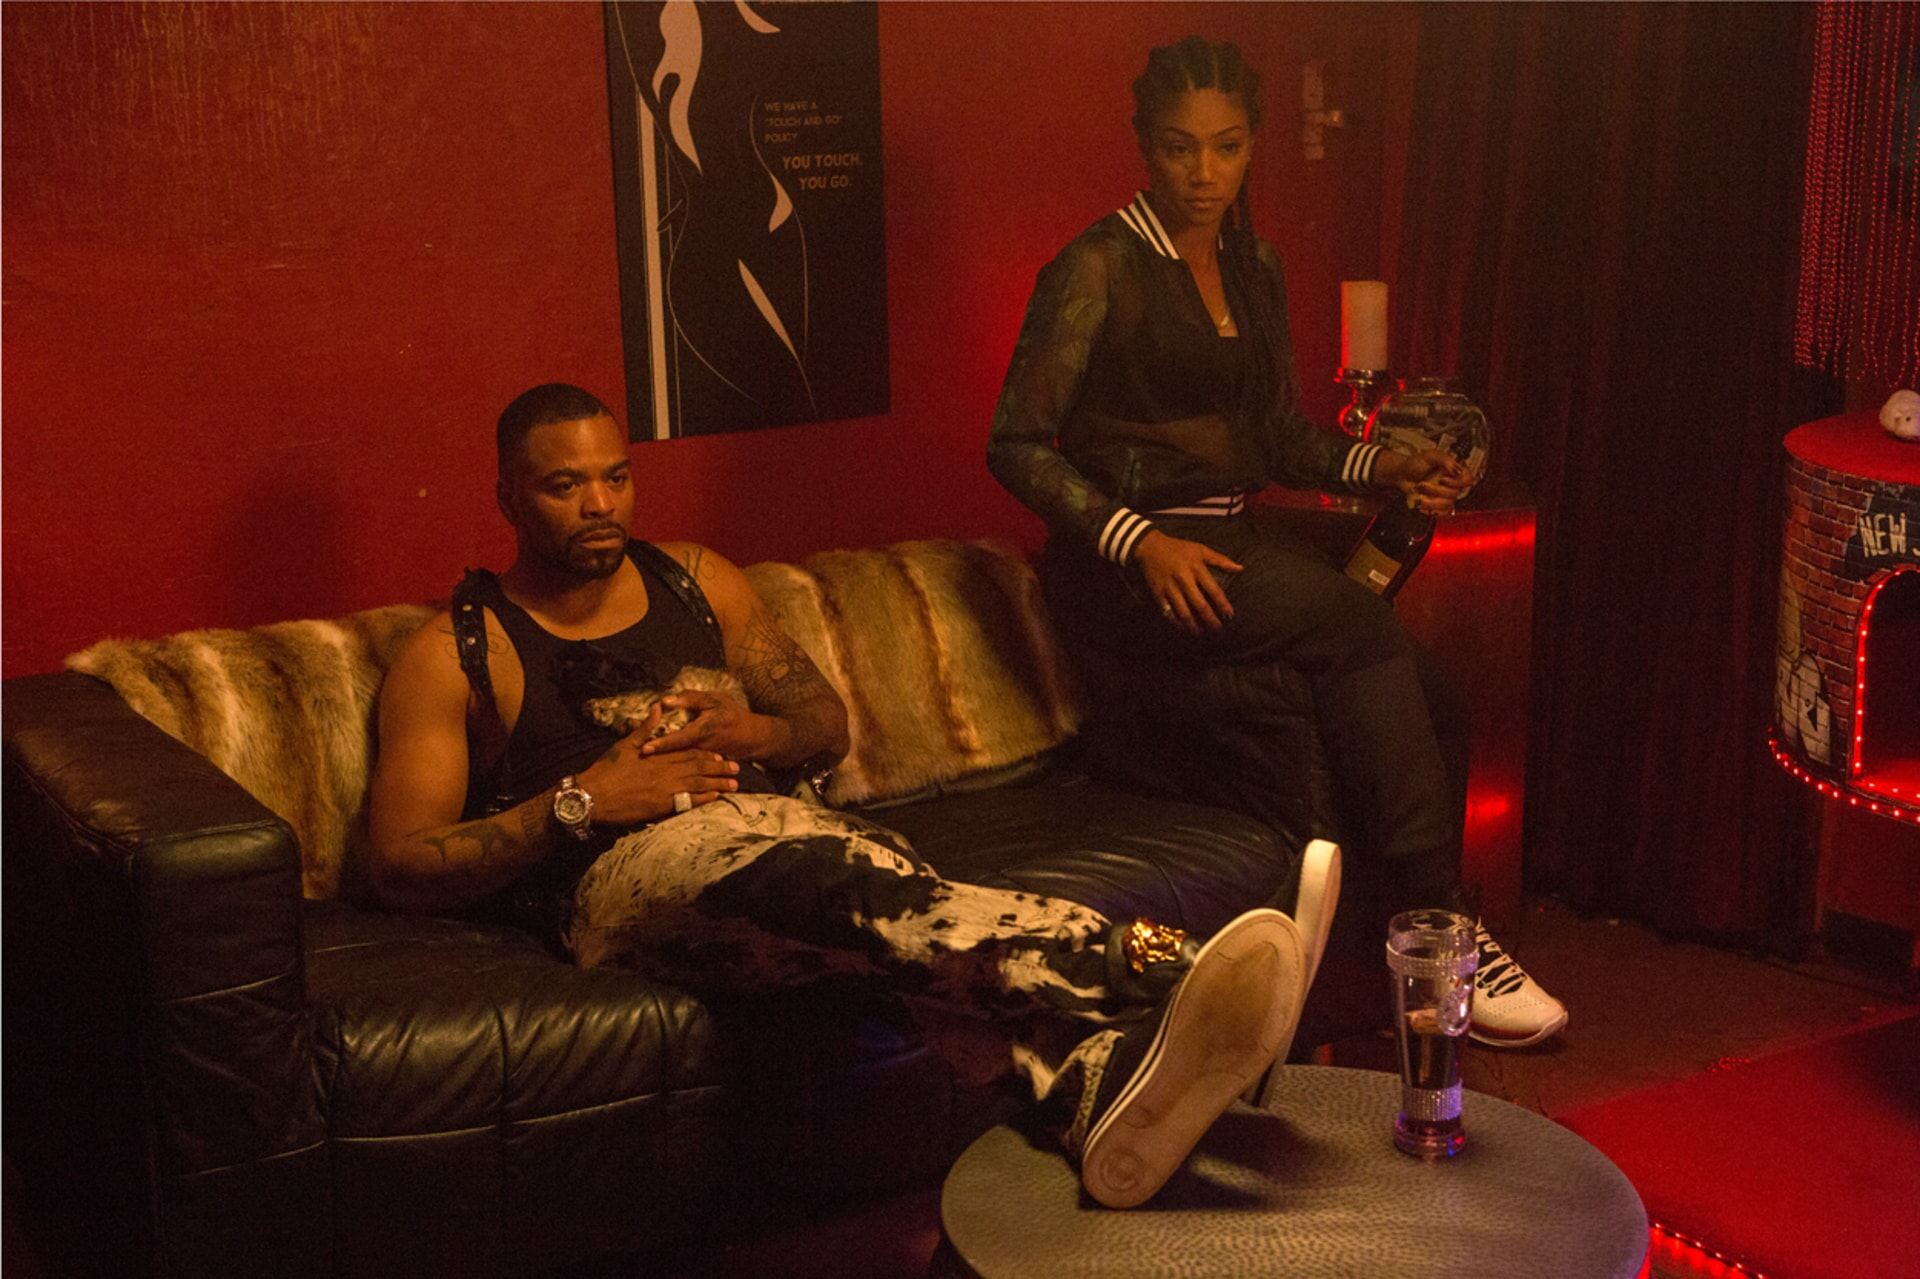 METHOD MAN as Cheddar holding Keanu the kitten and TIFFANY HADDISH as Hi-C sitting on a couch in a room painted red